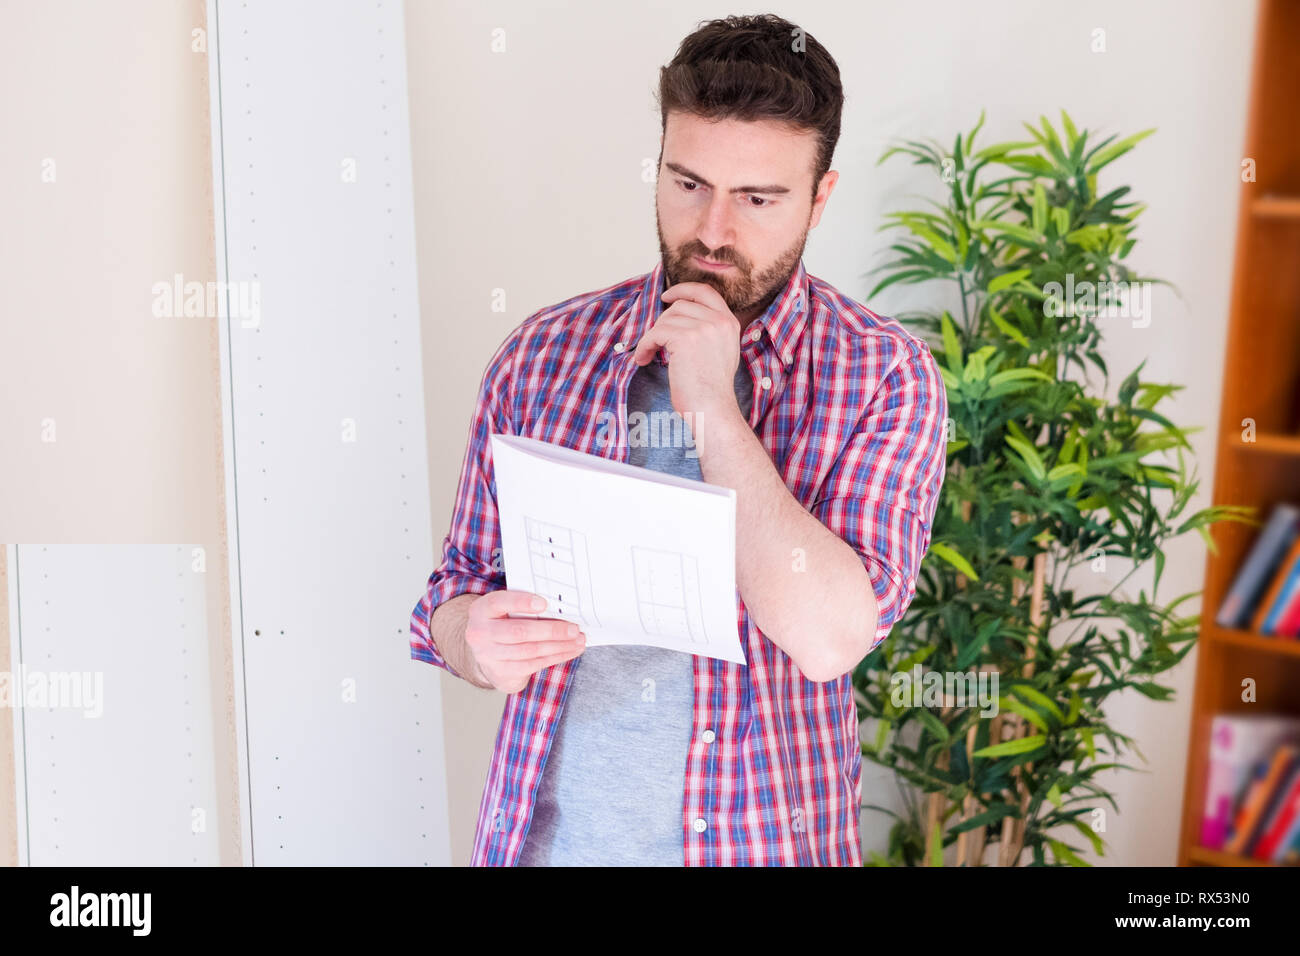 Man portrait and do it yourself furniture assembly - Stock Image